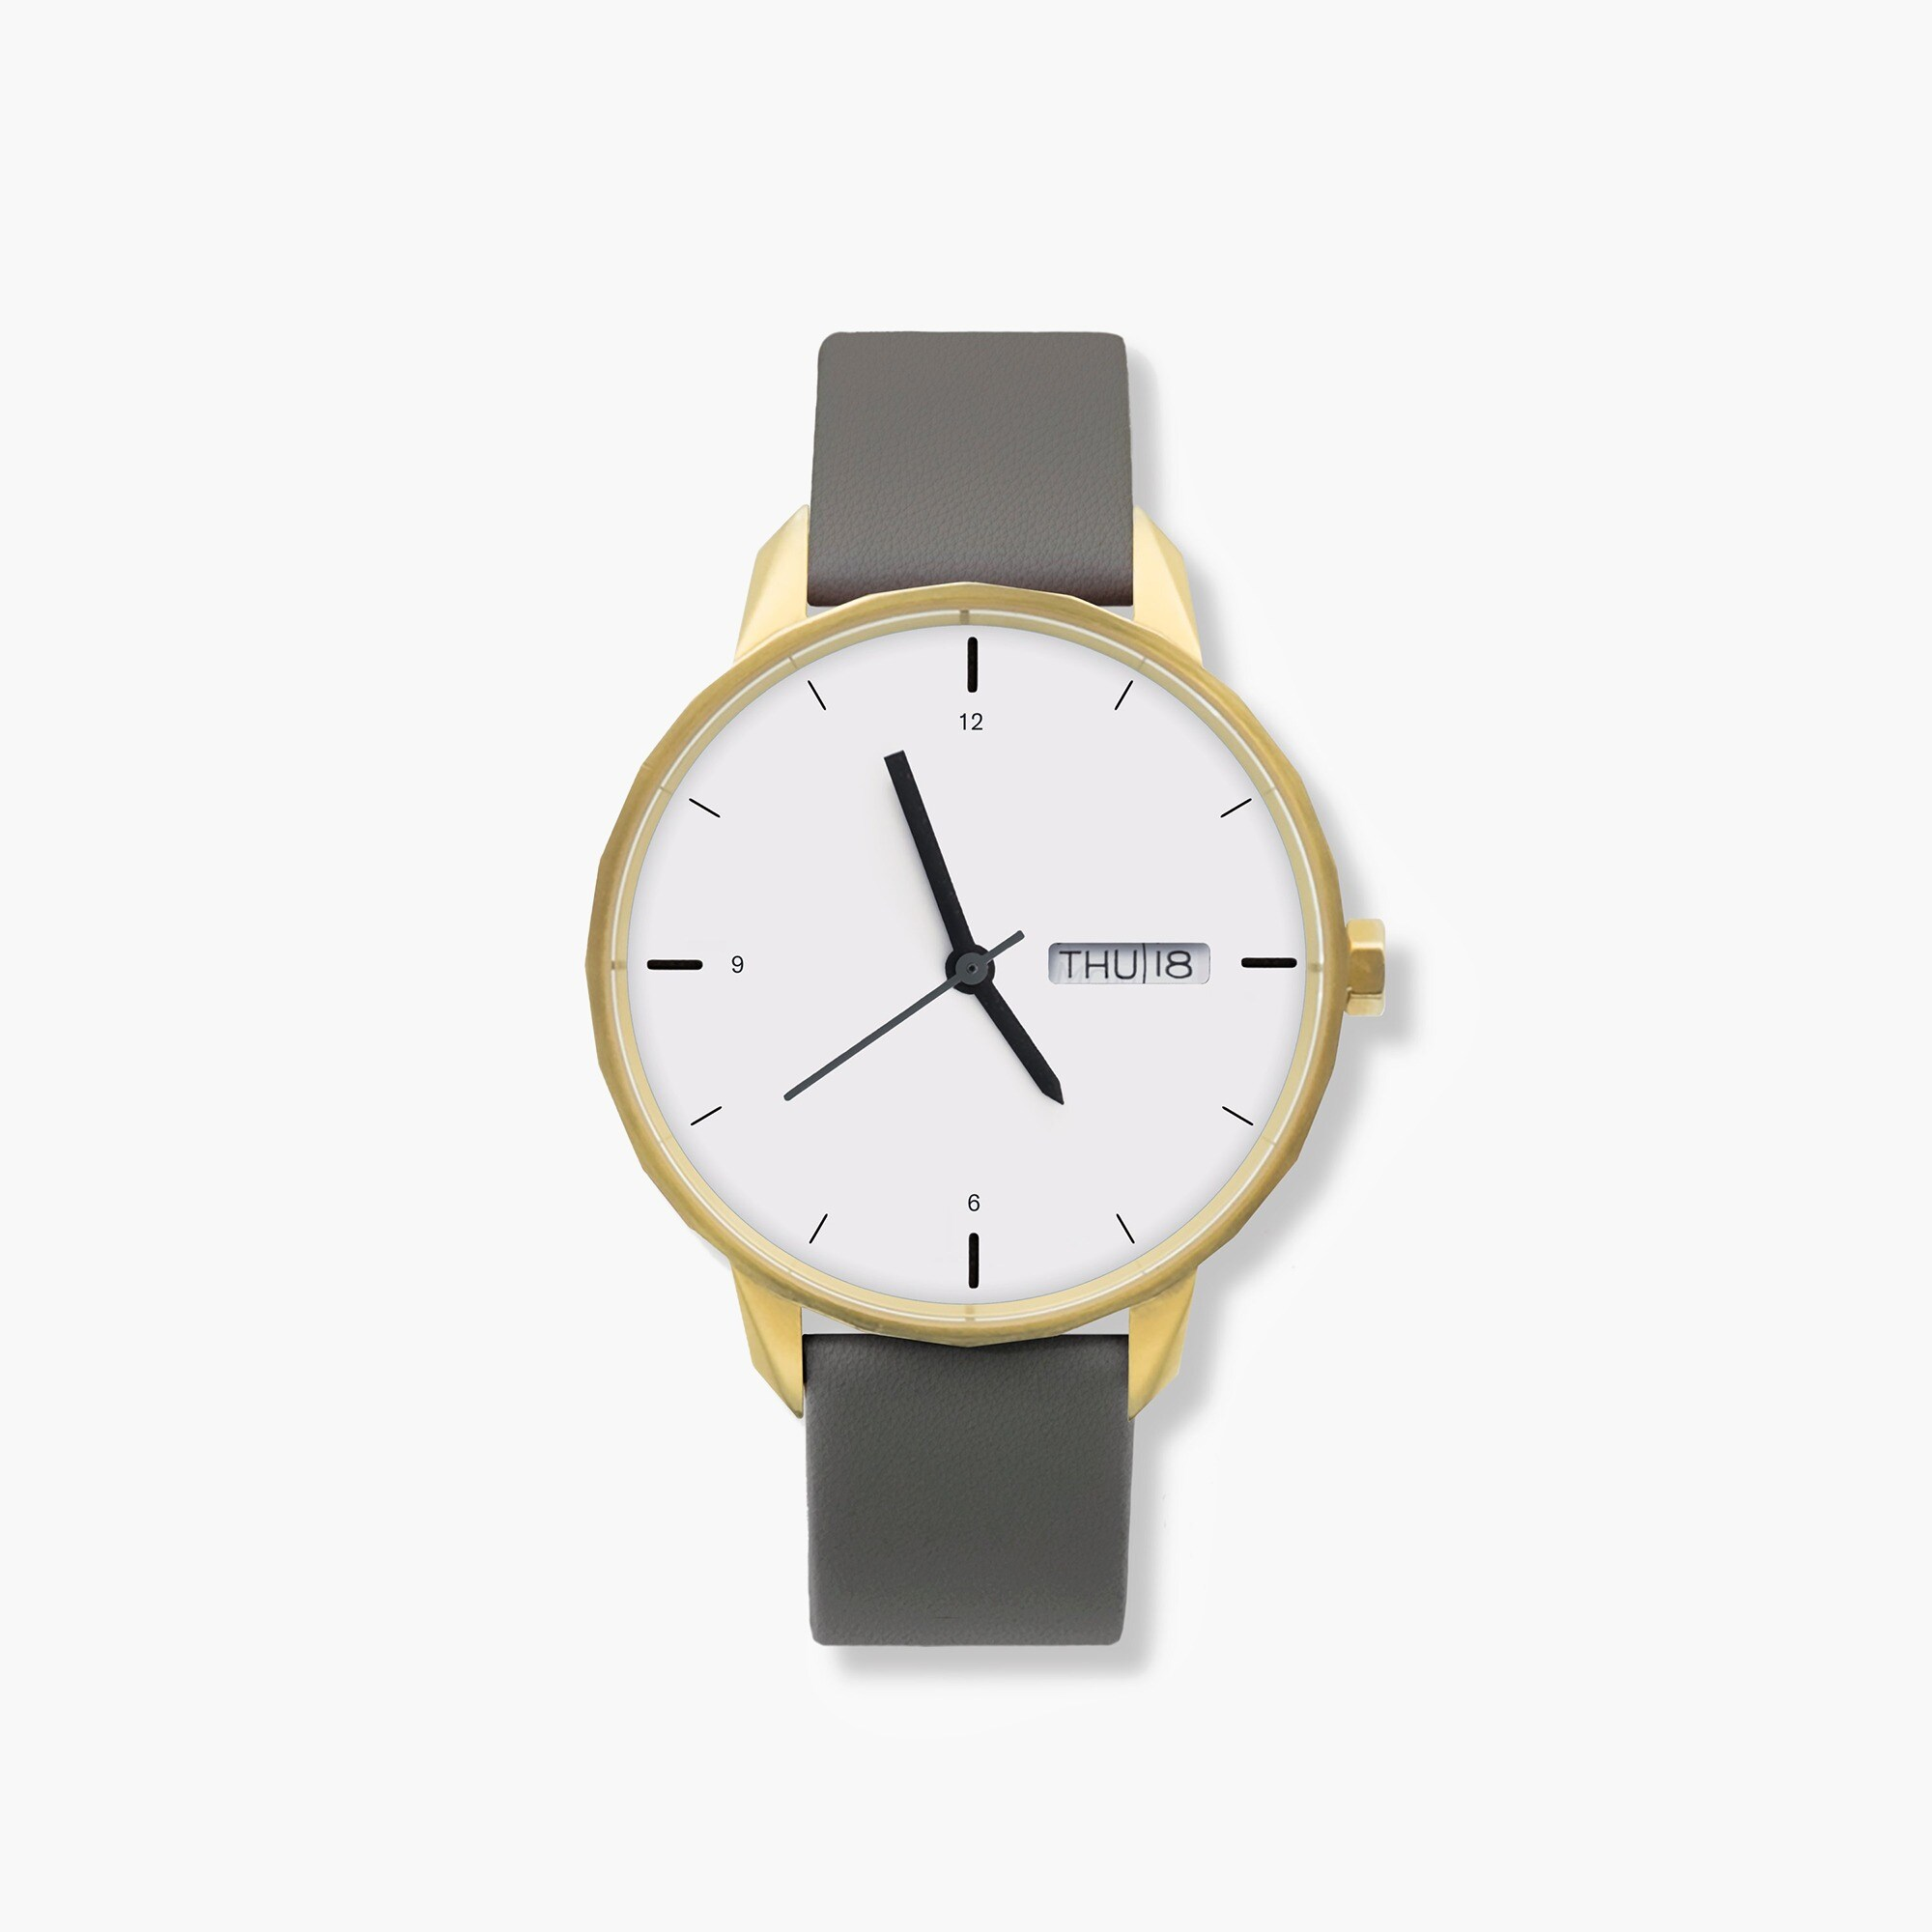 womens Tinker™ 42mm gold-toned watch with grey strap